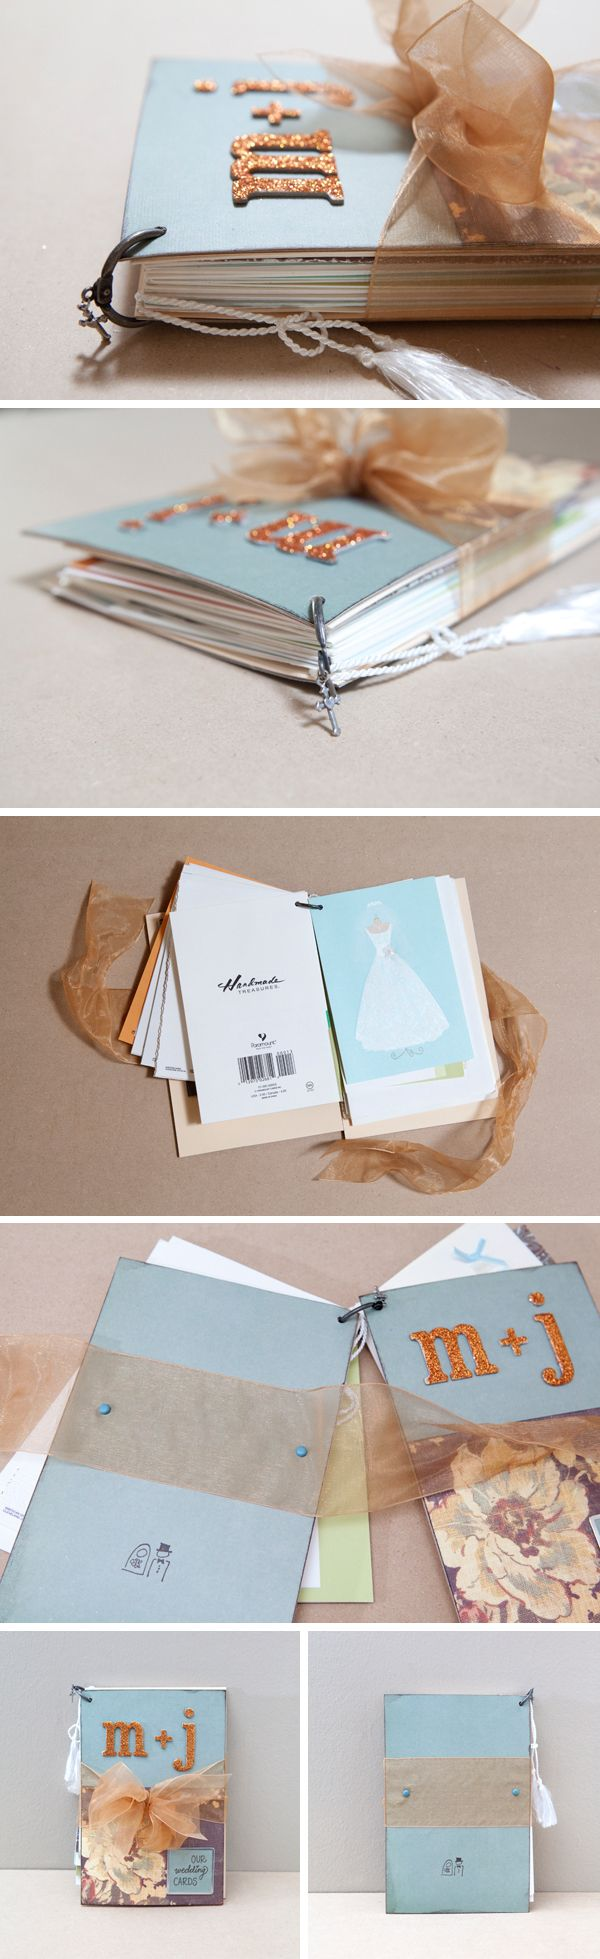 How to DIY an adorable album to